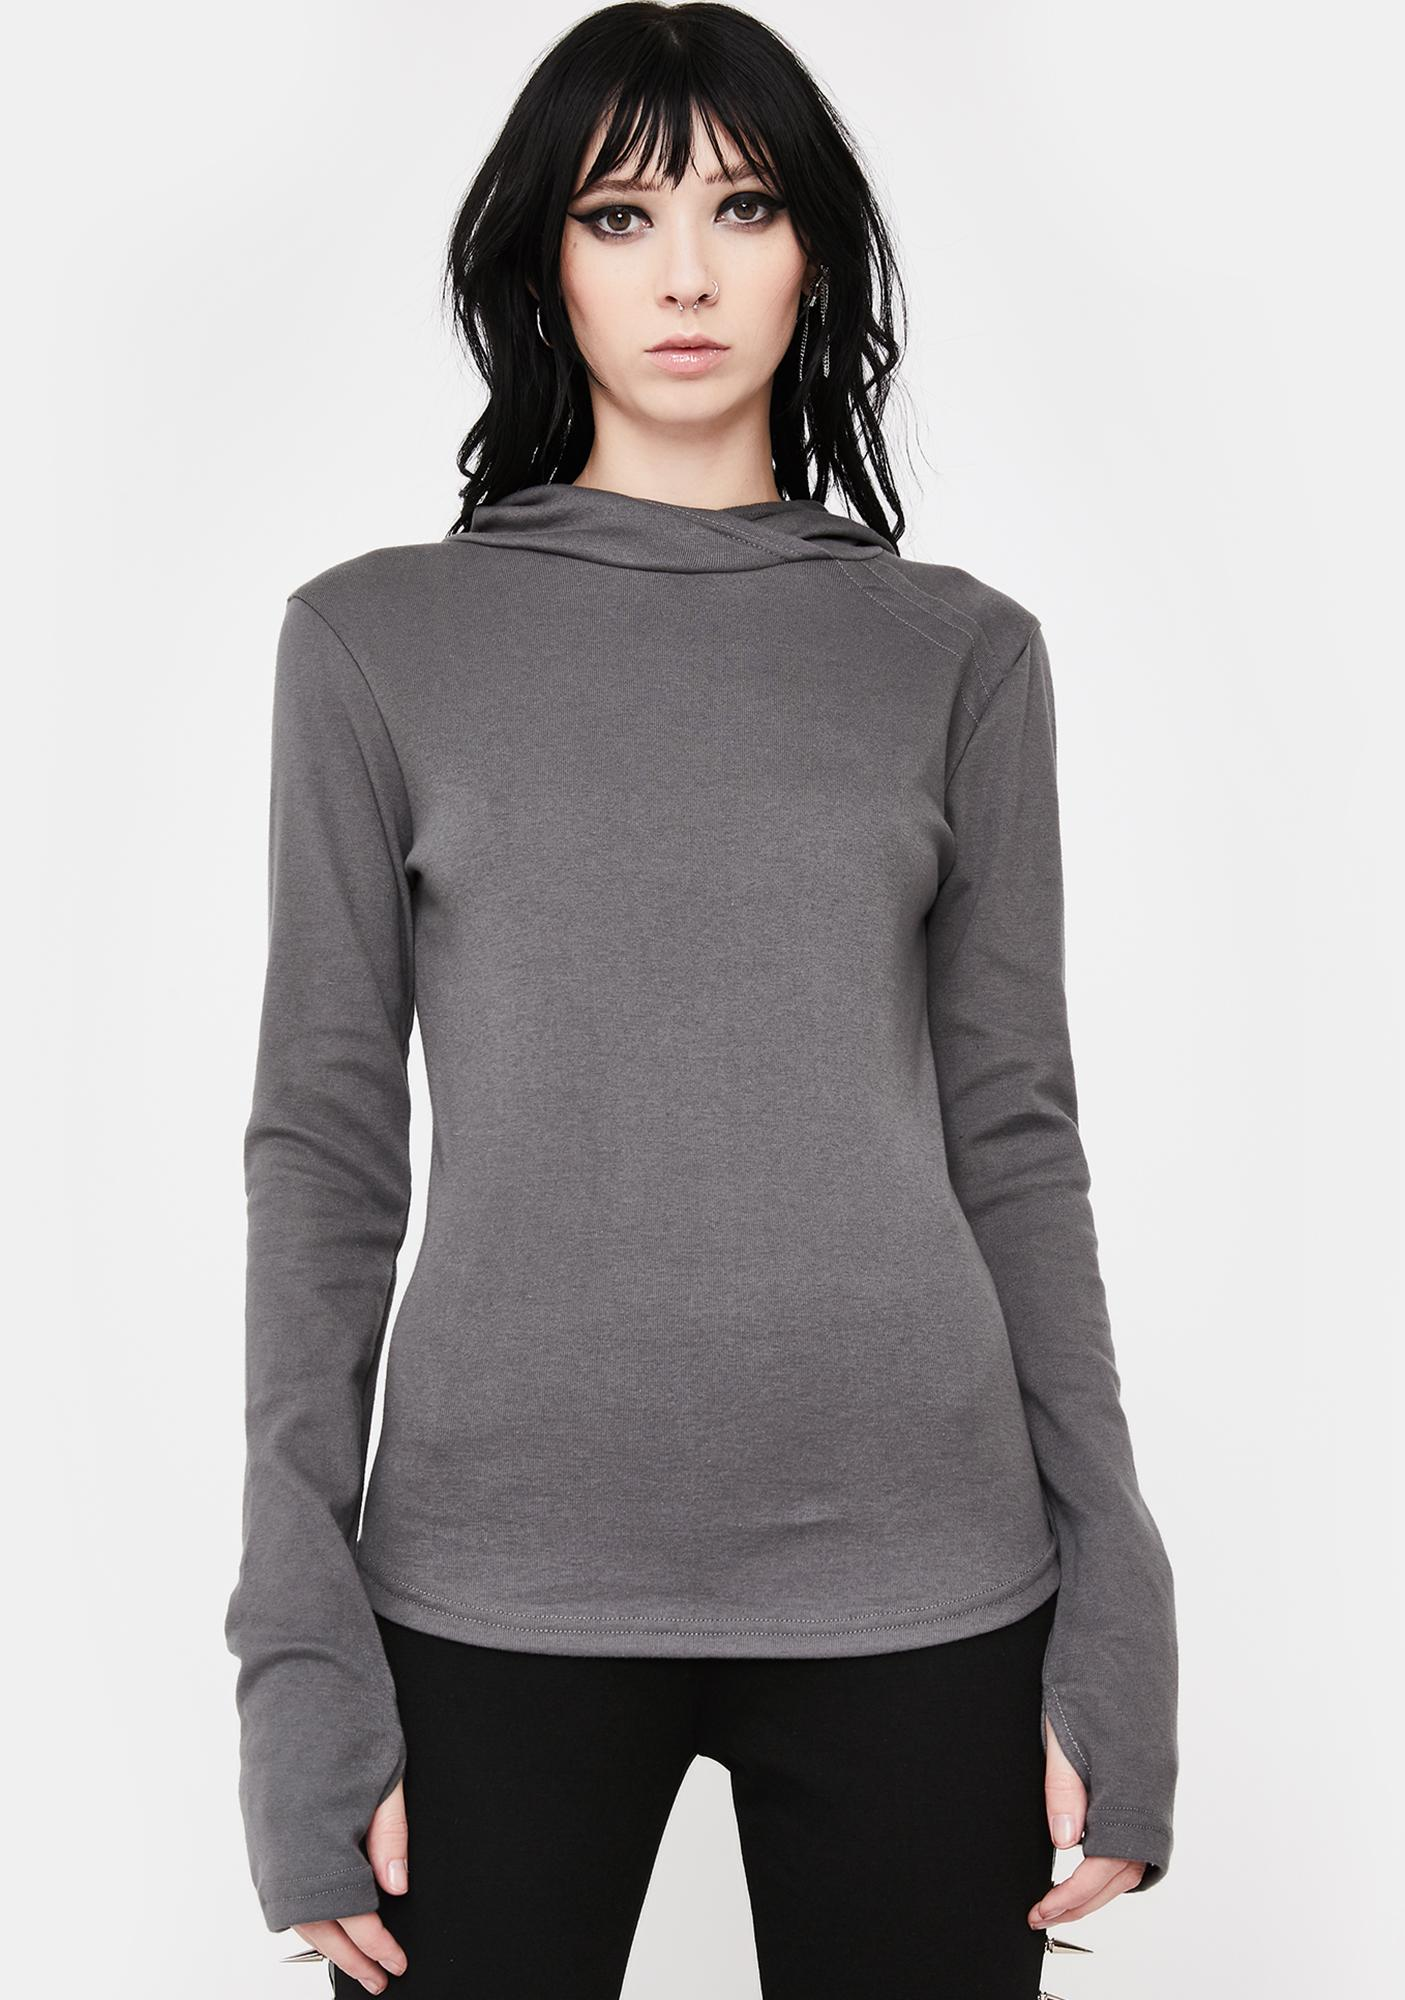 NOCTEX Grey Base Hooded Long Sleeve Tee